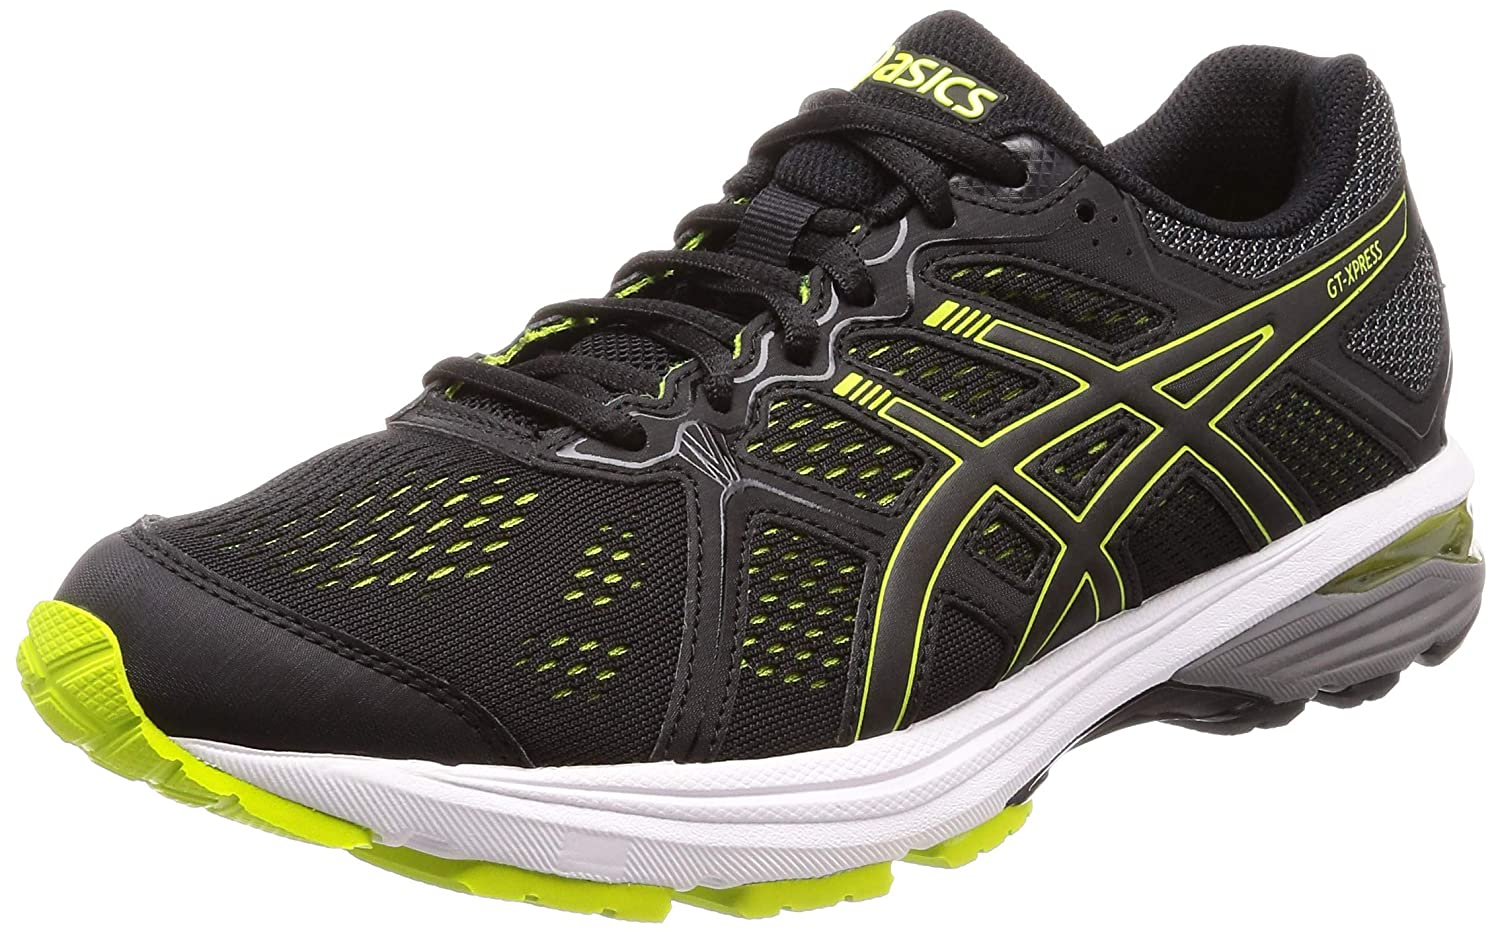 Gt-Xpress Black/Neon Lime Running Shoes